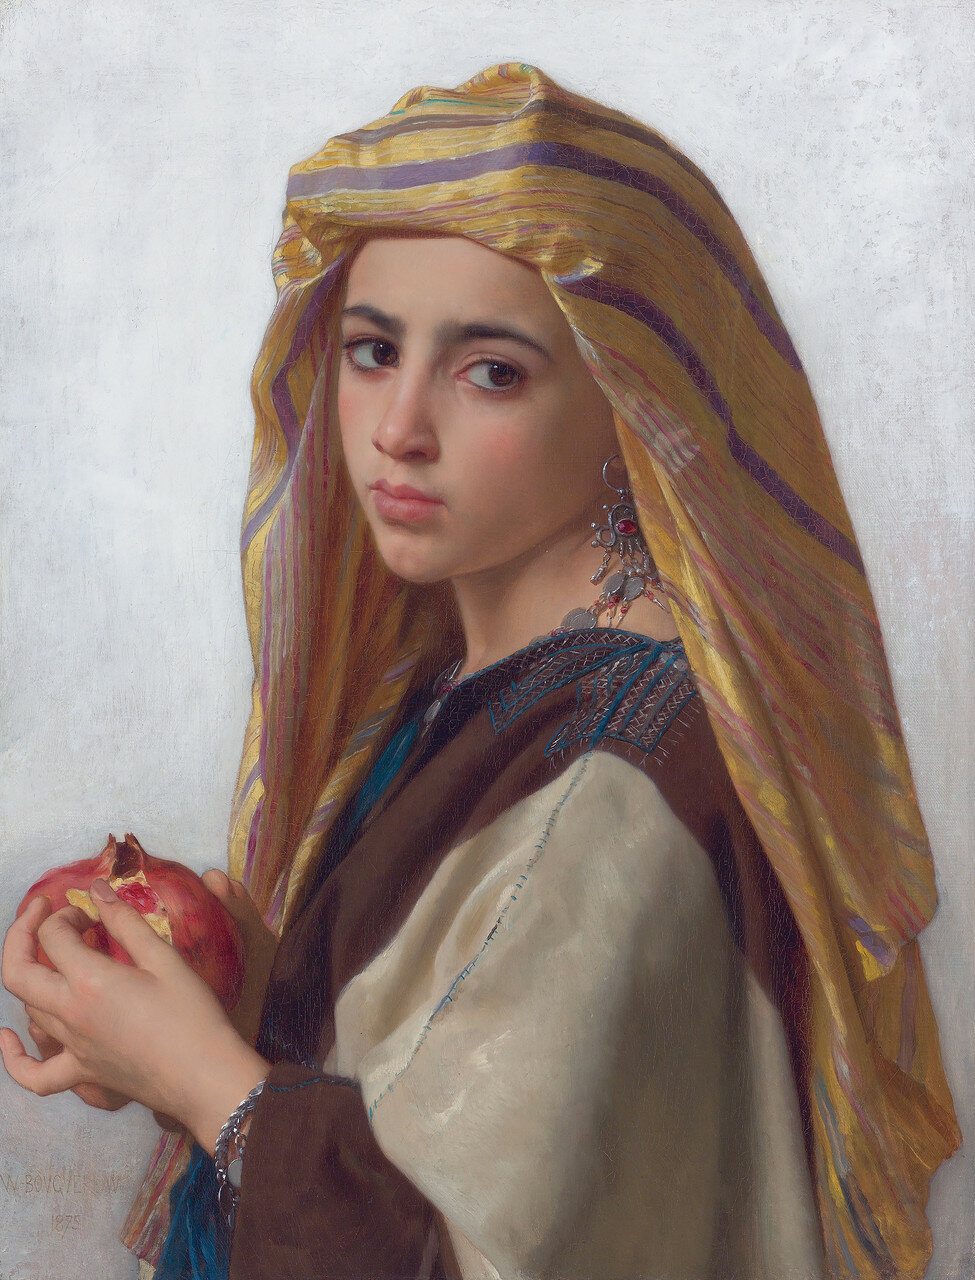 Girl_with_a_pomegranate,_by_William_Bouguereau.jpg